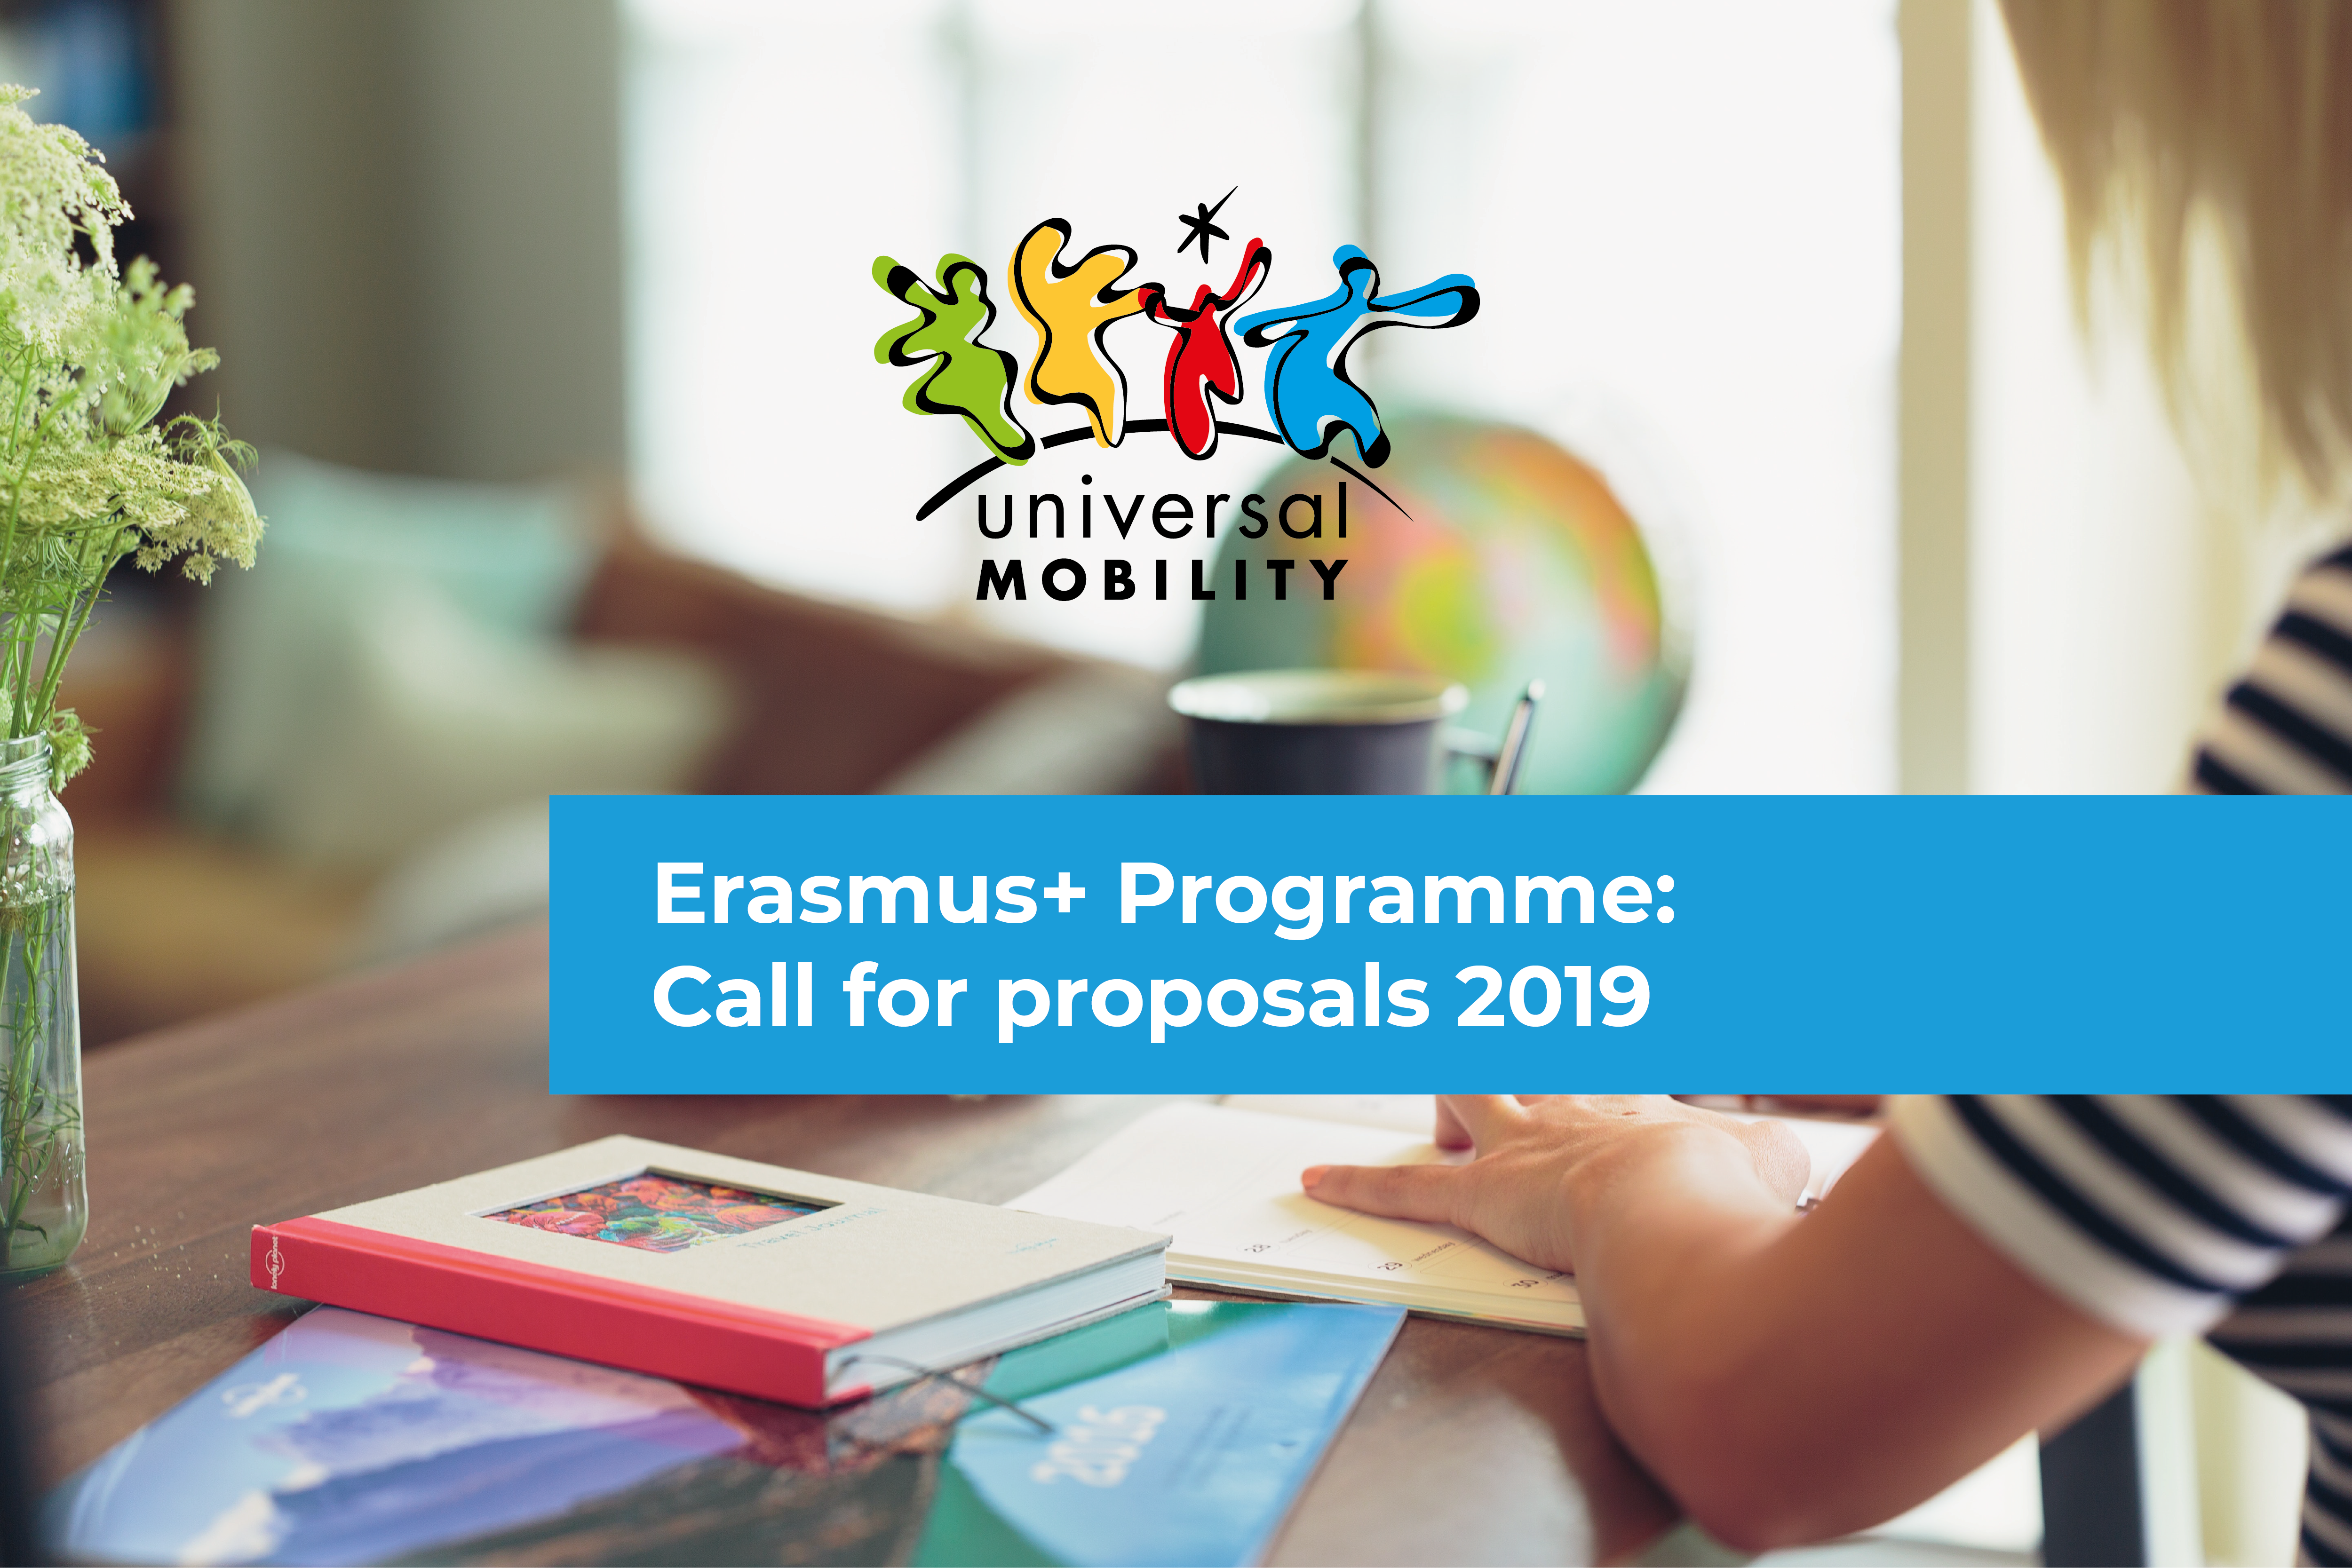 Erasmus+ Programme: Last call for proposals 2019